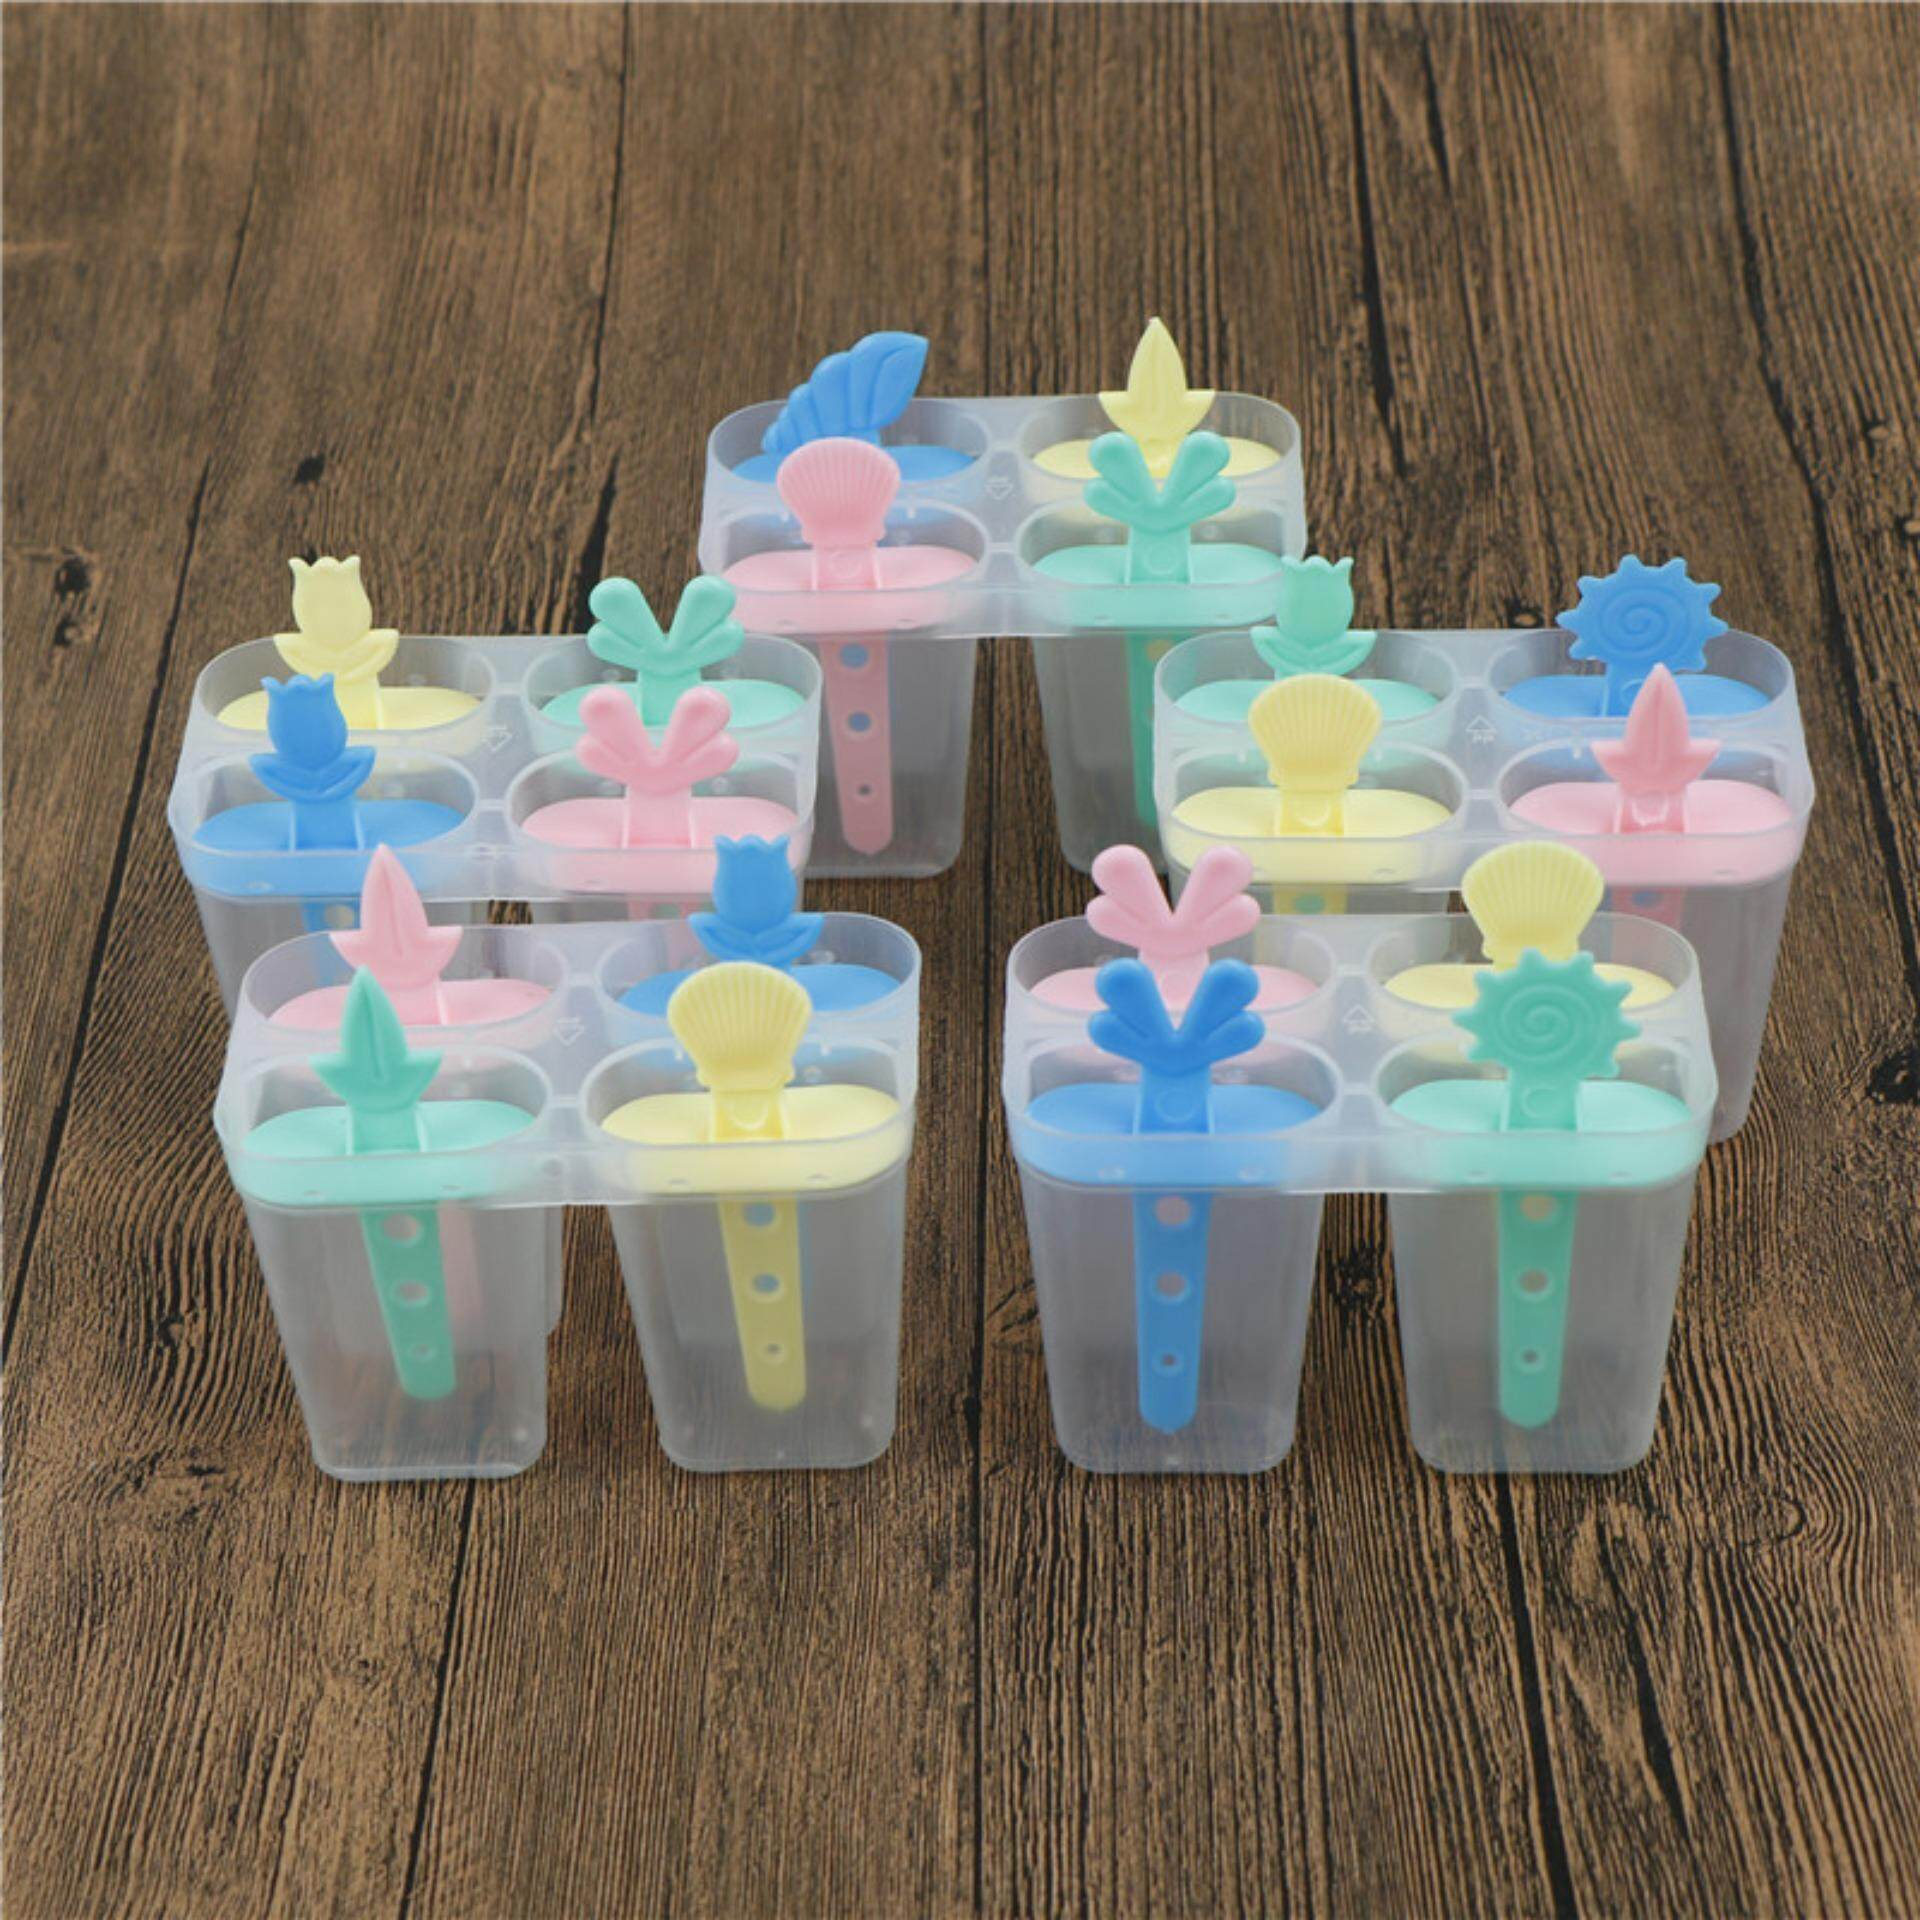 Jettingbuy 4 Cell Ice Cream Pop Mold Popsicle Maker Lolly Mould Tray Pan Diy By Jettingbuy.